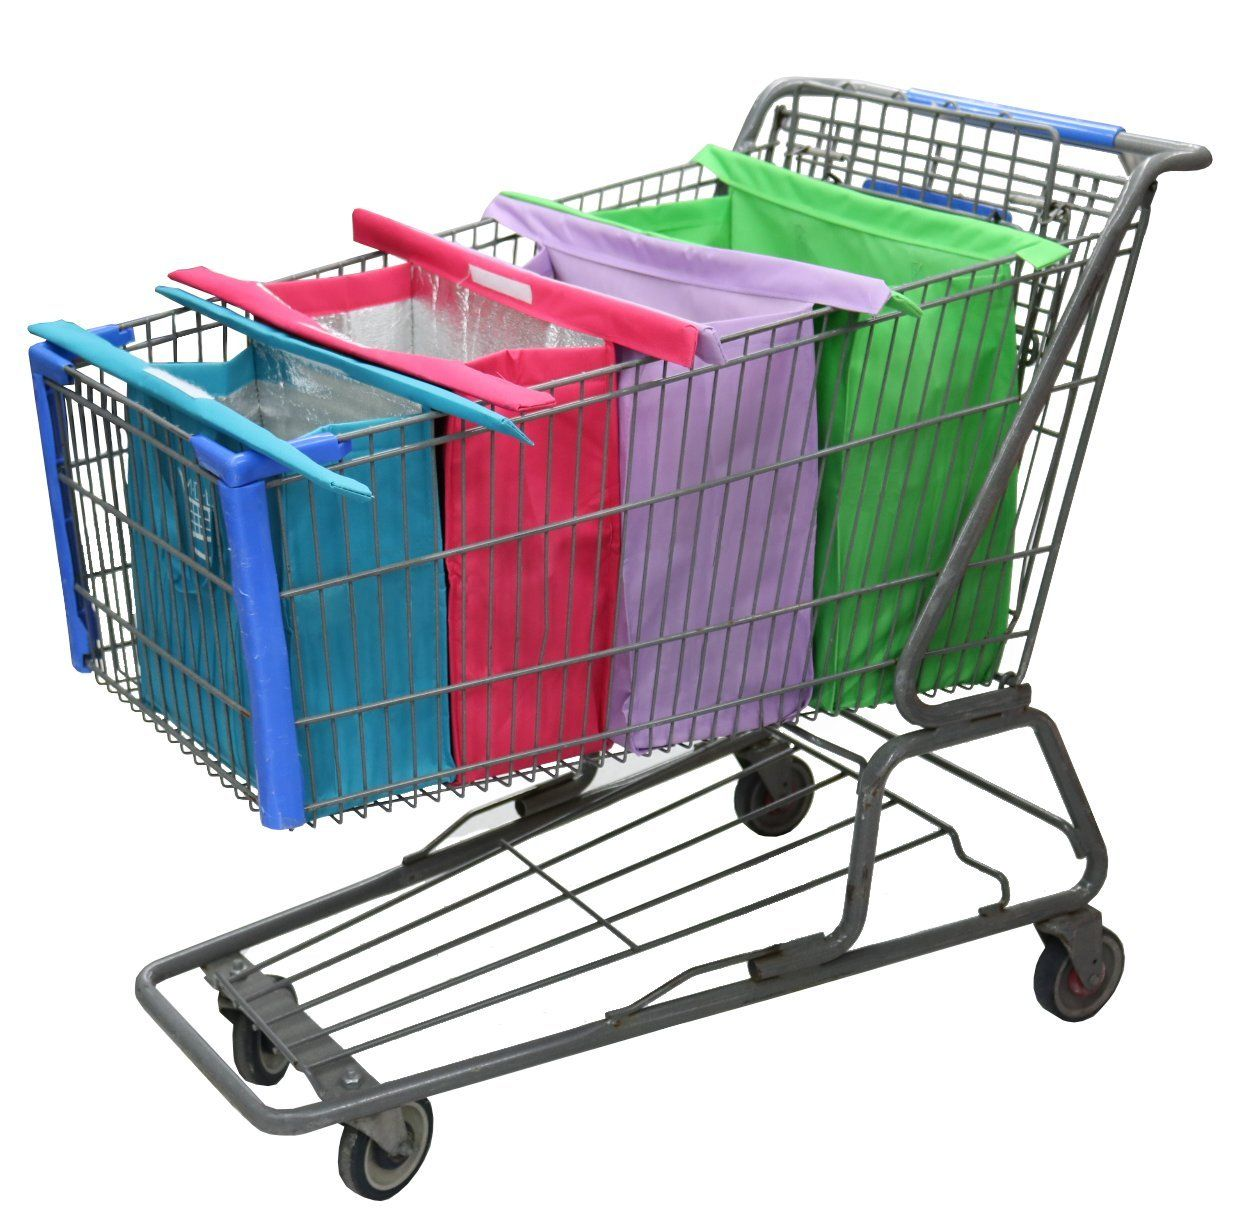 5230f9ad9 Amazon.com  Shopping Cart Trolley Bags by  Modern Day Living - 4 Reusable  Grocery Bags with Insulated Cooler Bag - Easy to Use and Heavy Duty - Eco  ...